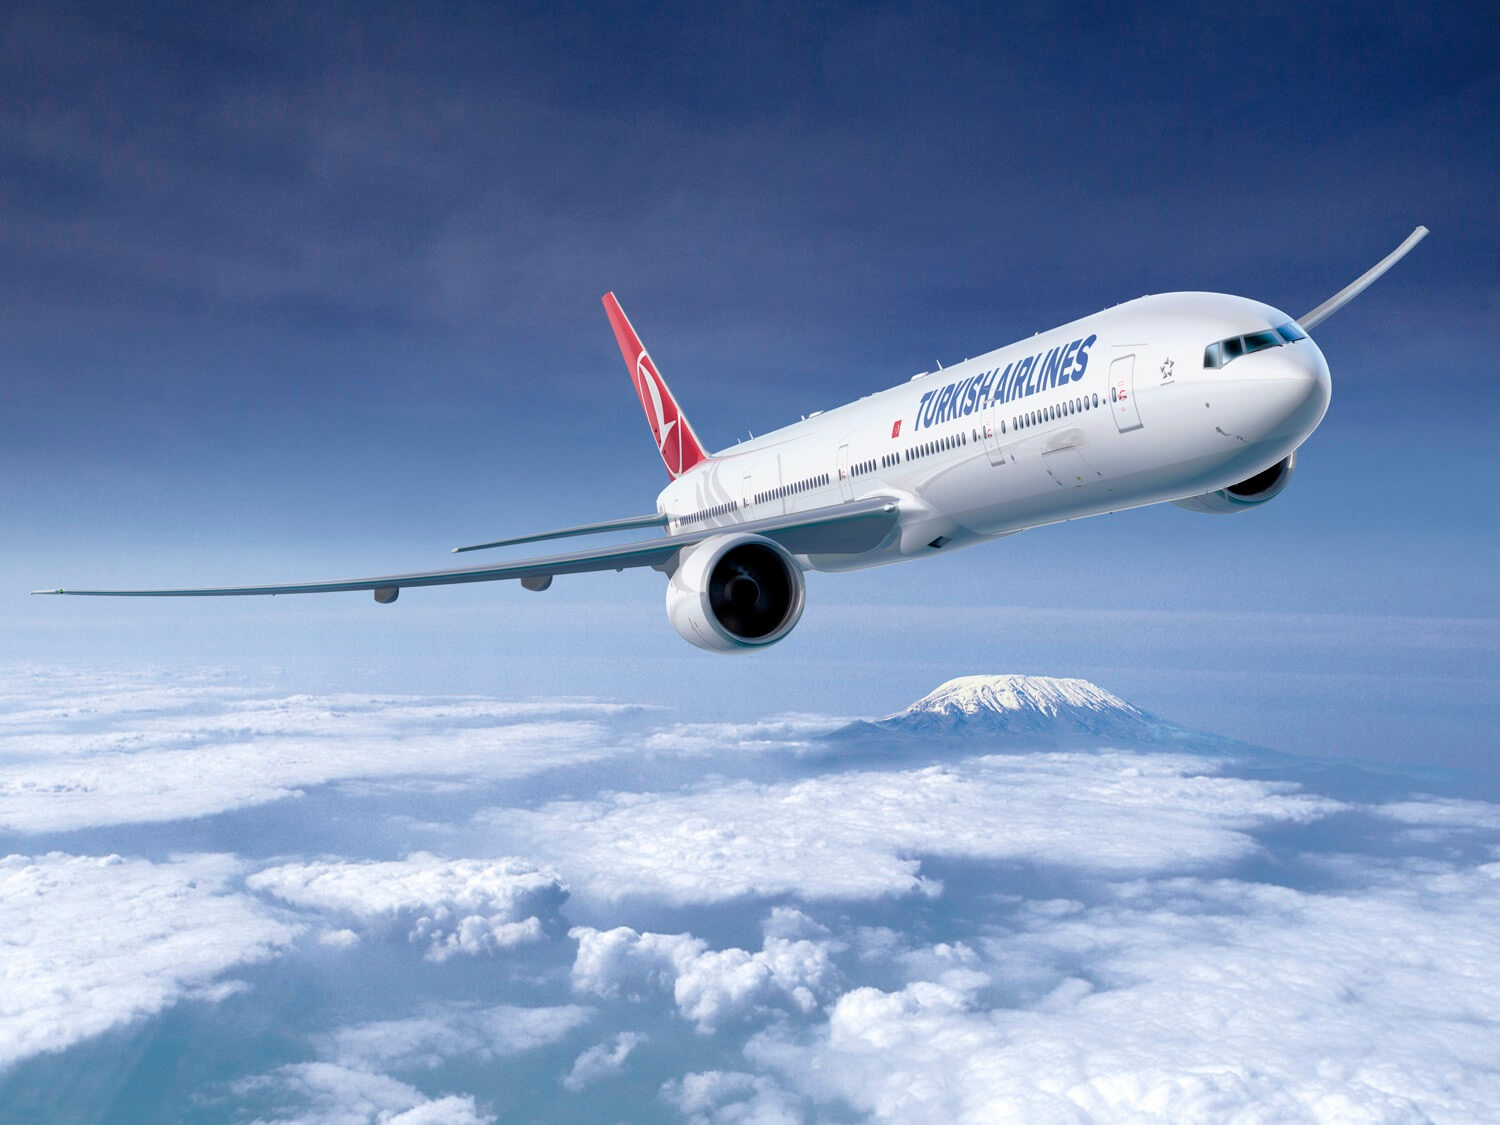 Turkish Airlines continues its growth trend